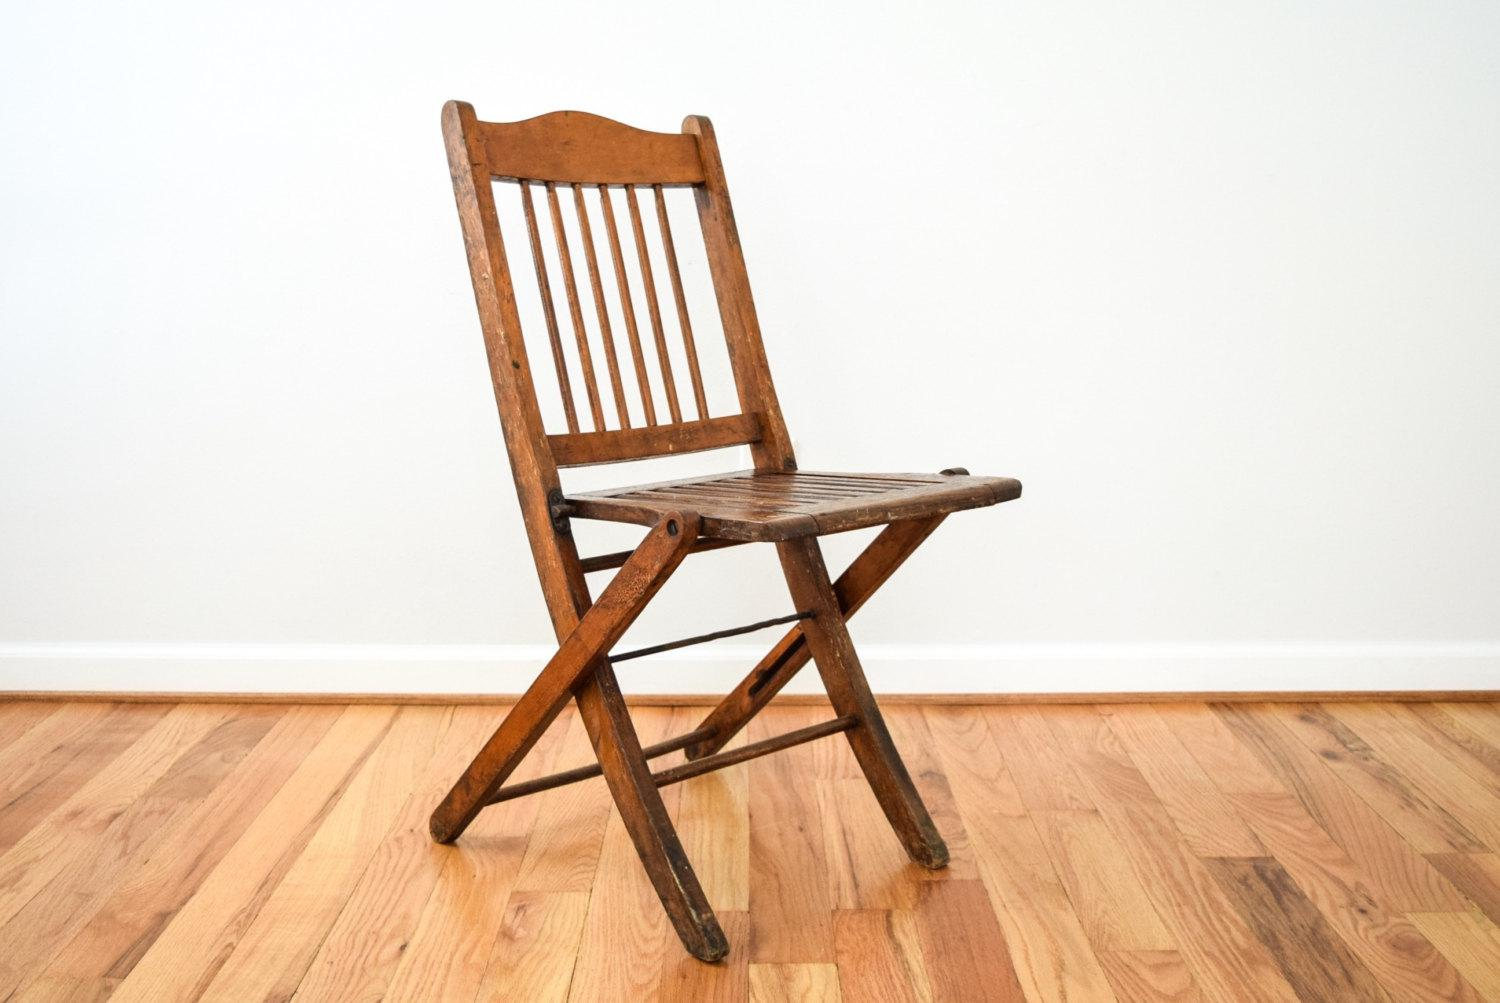 Antique Folding Chair Circa Early 20th C. U2022 Classic Theater Or Deck Style.